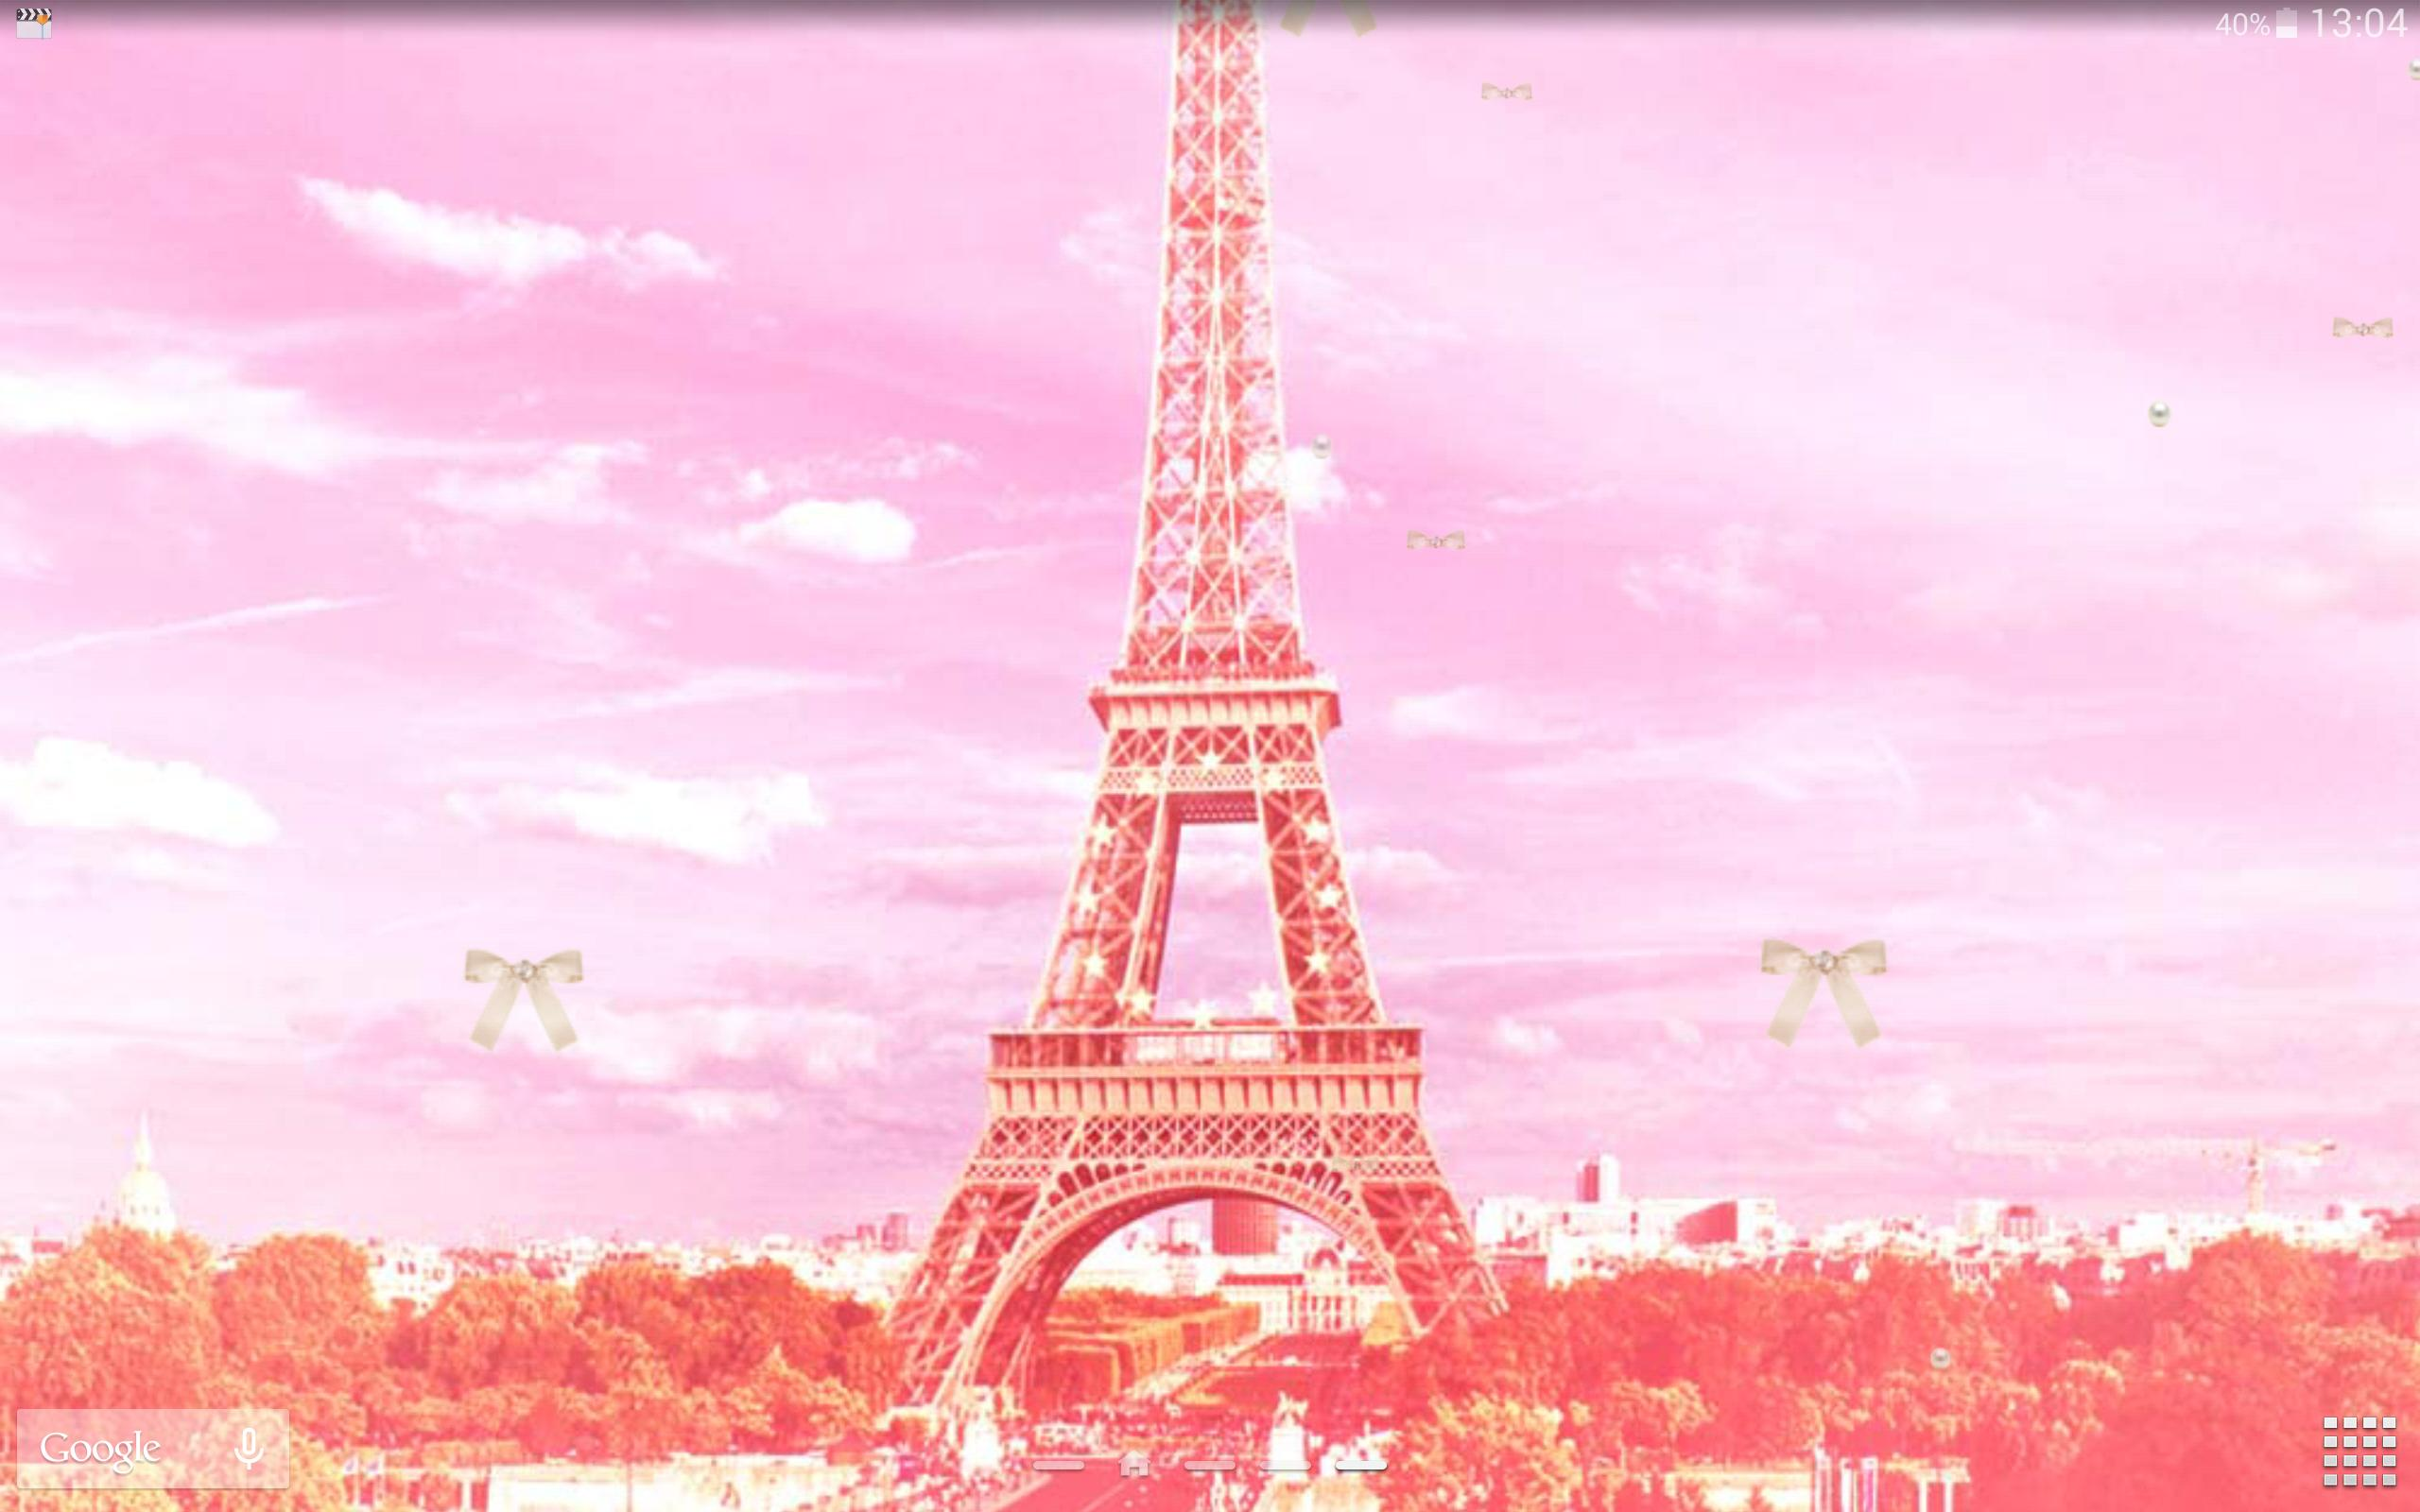 Unduh 98 Wallpaper Animasi Menara Eiffel HD Terbaik